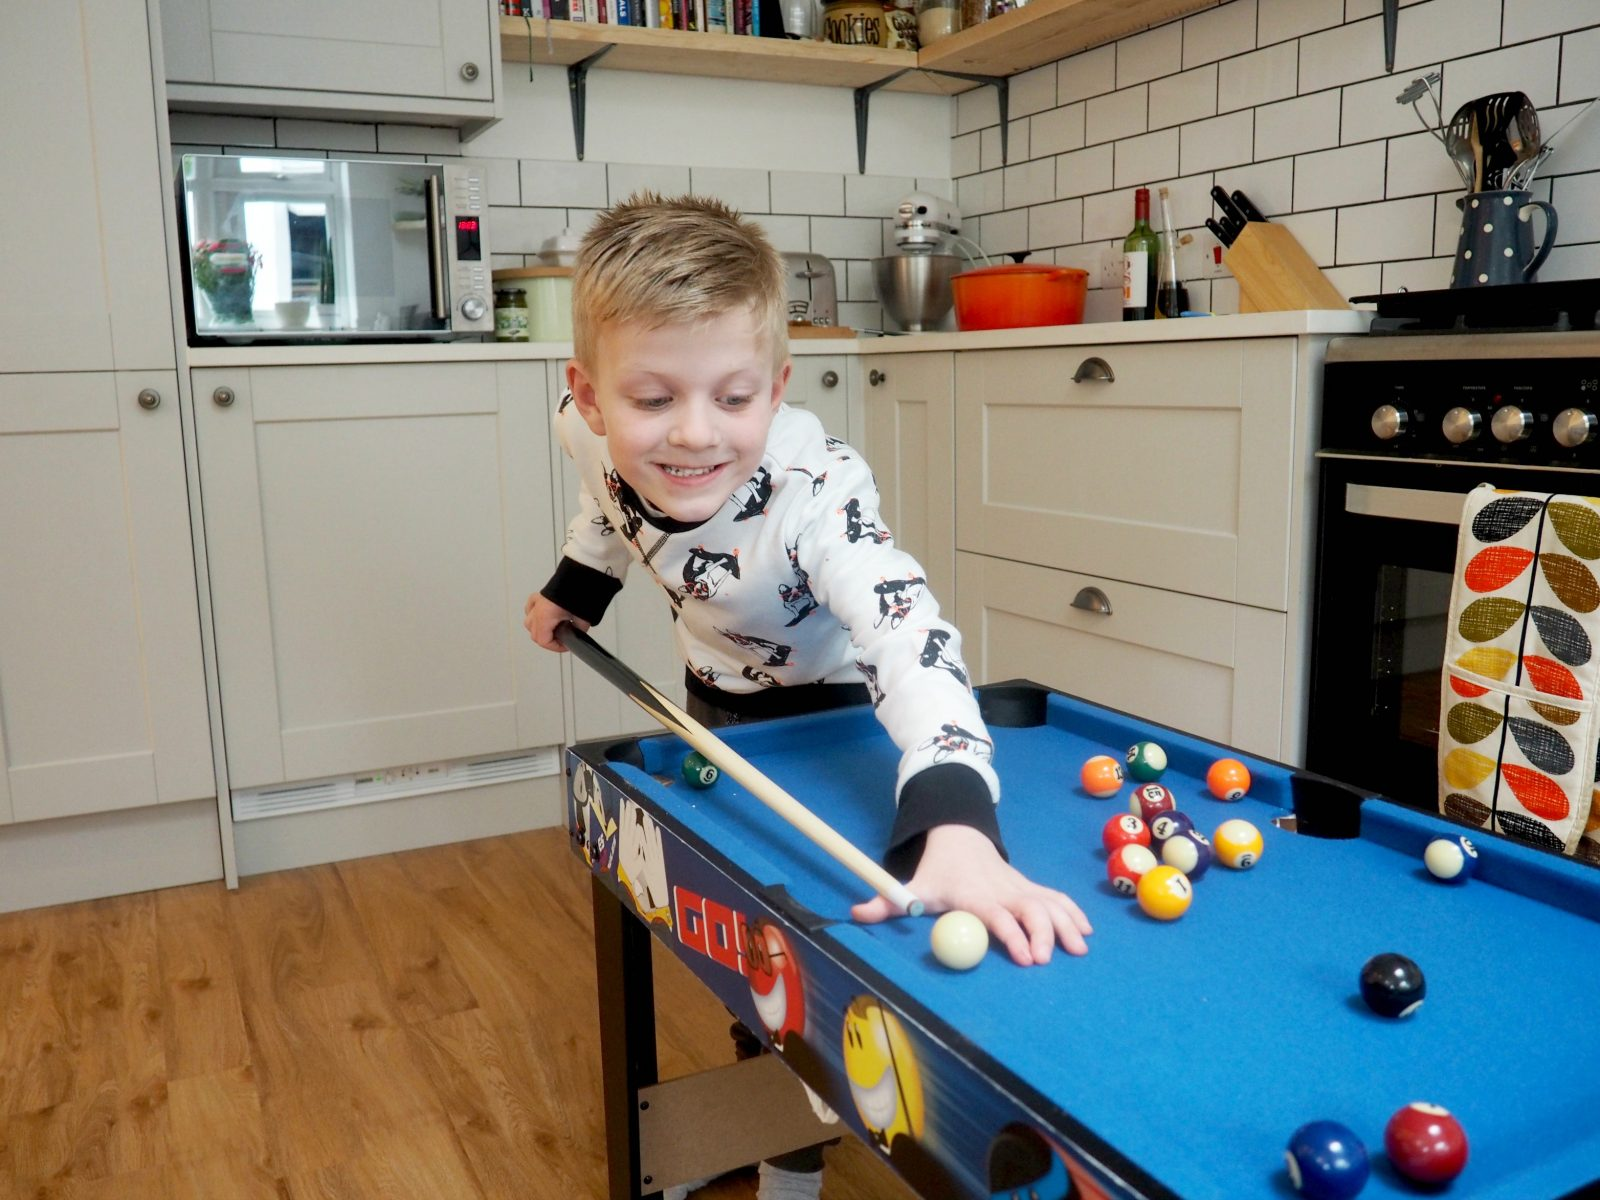 Review: Chad Valley 3ft 4-in-1 Multi Game Table and WIN a £75 Argos Gift Card